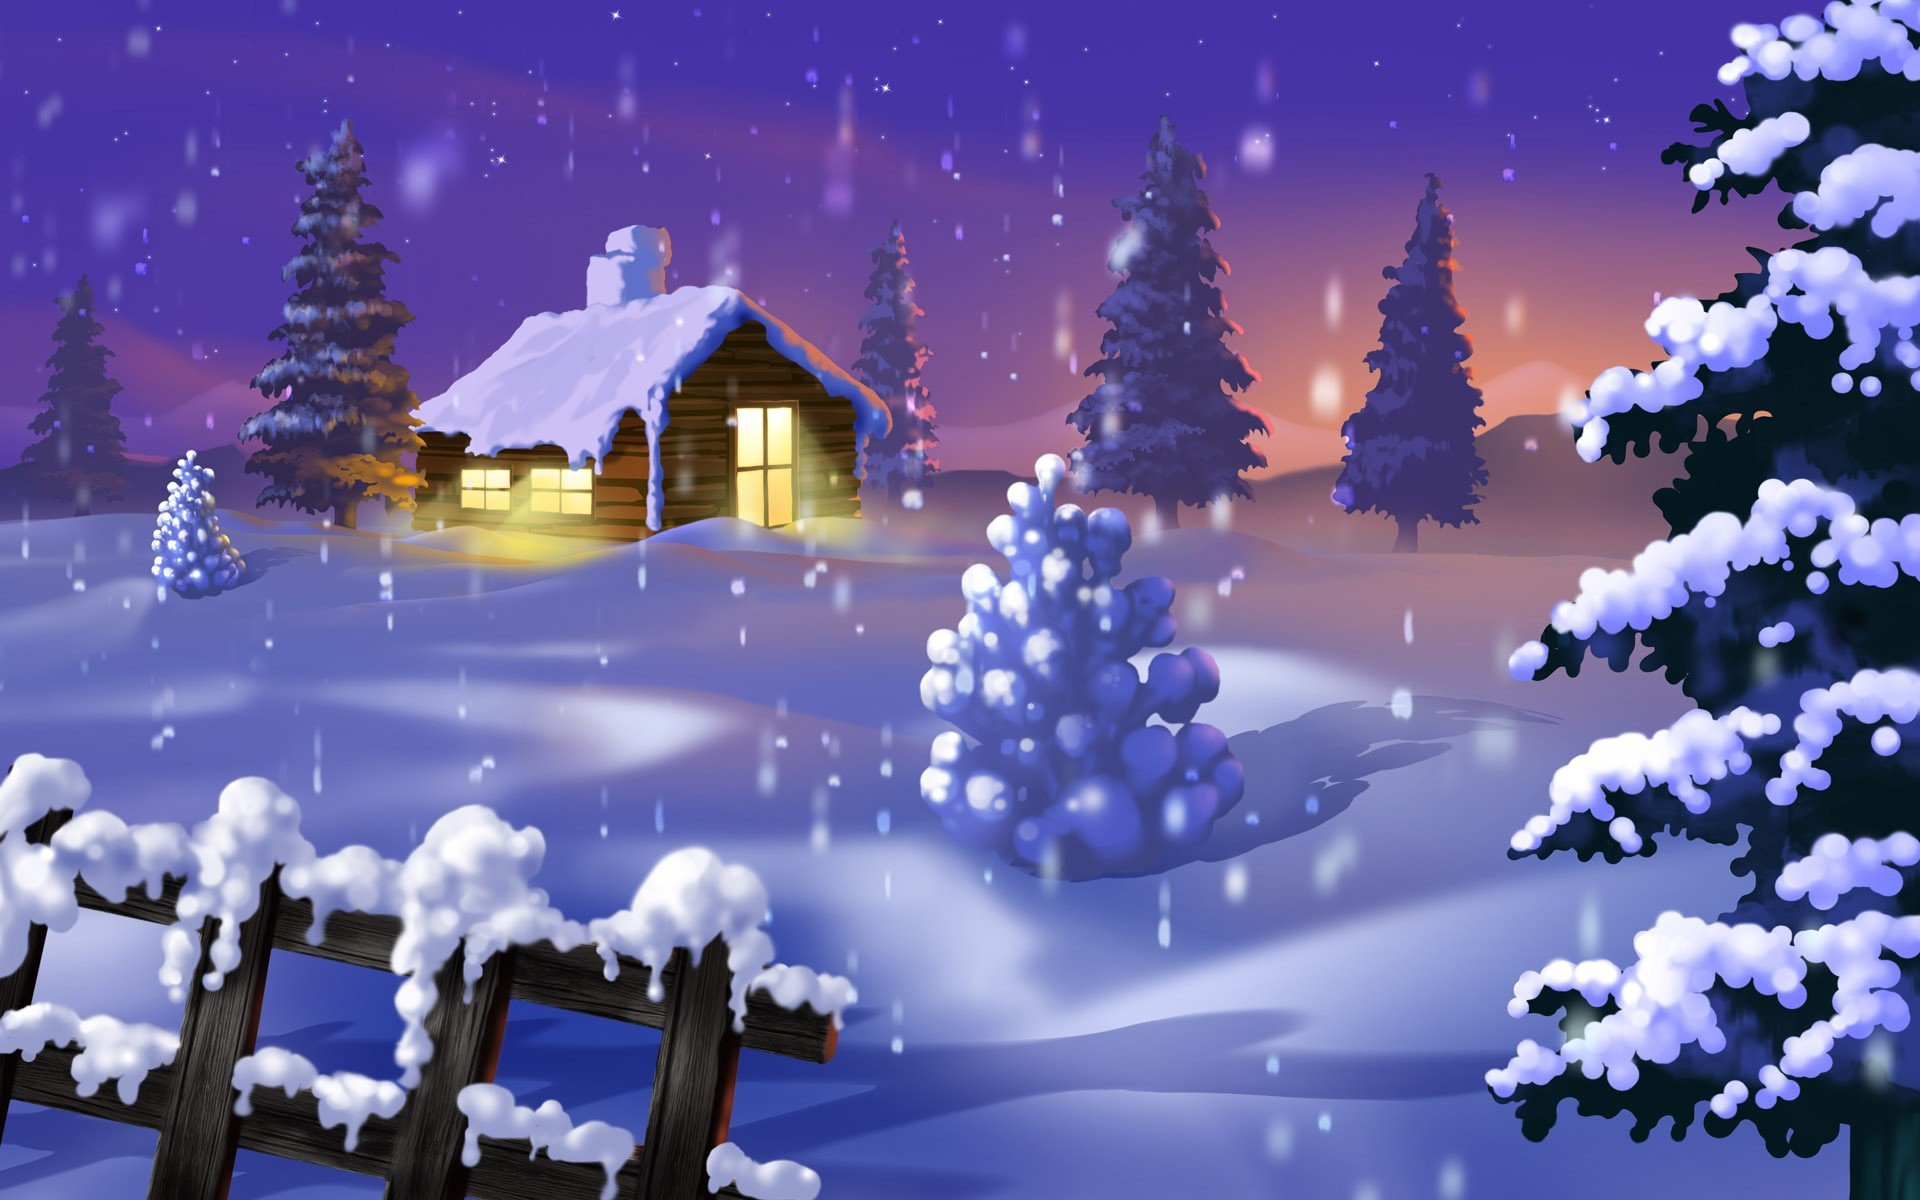 Calendar Live Wallpaper : Top beautiful winter snow live wallpapers for android